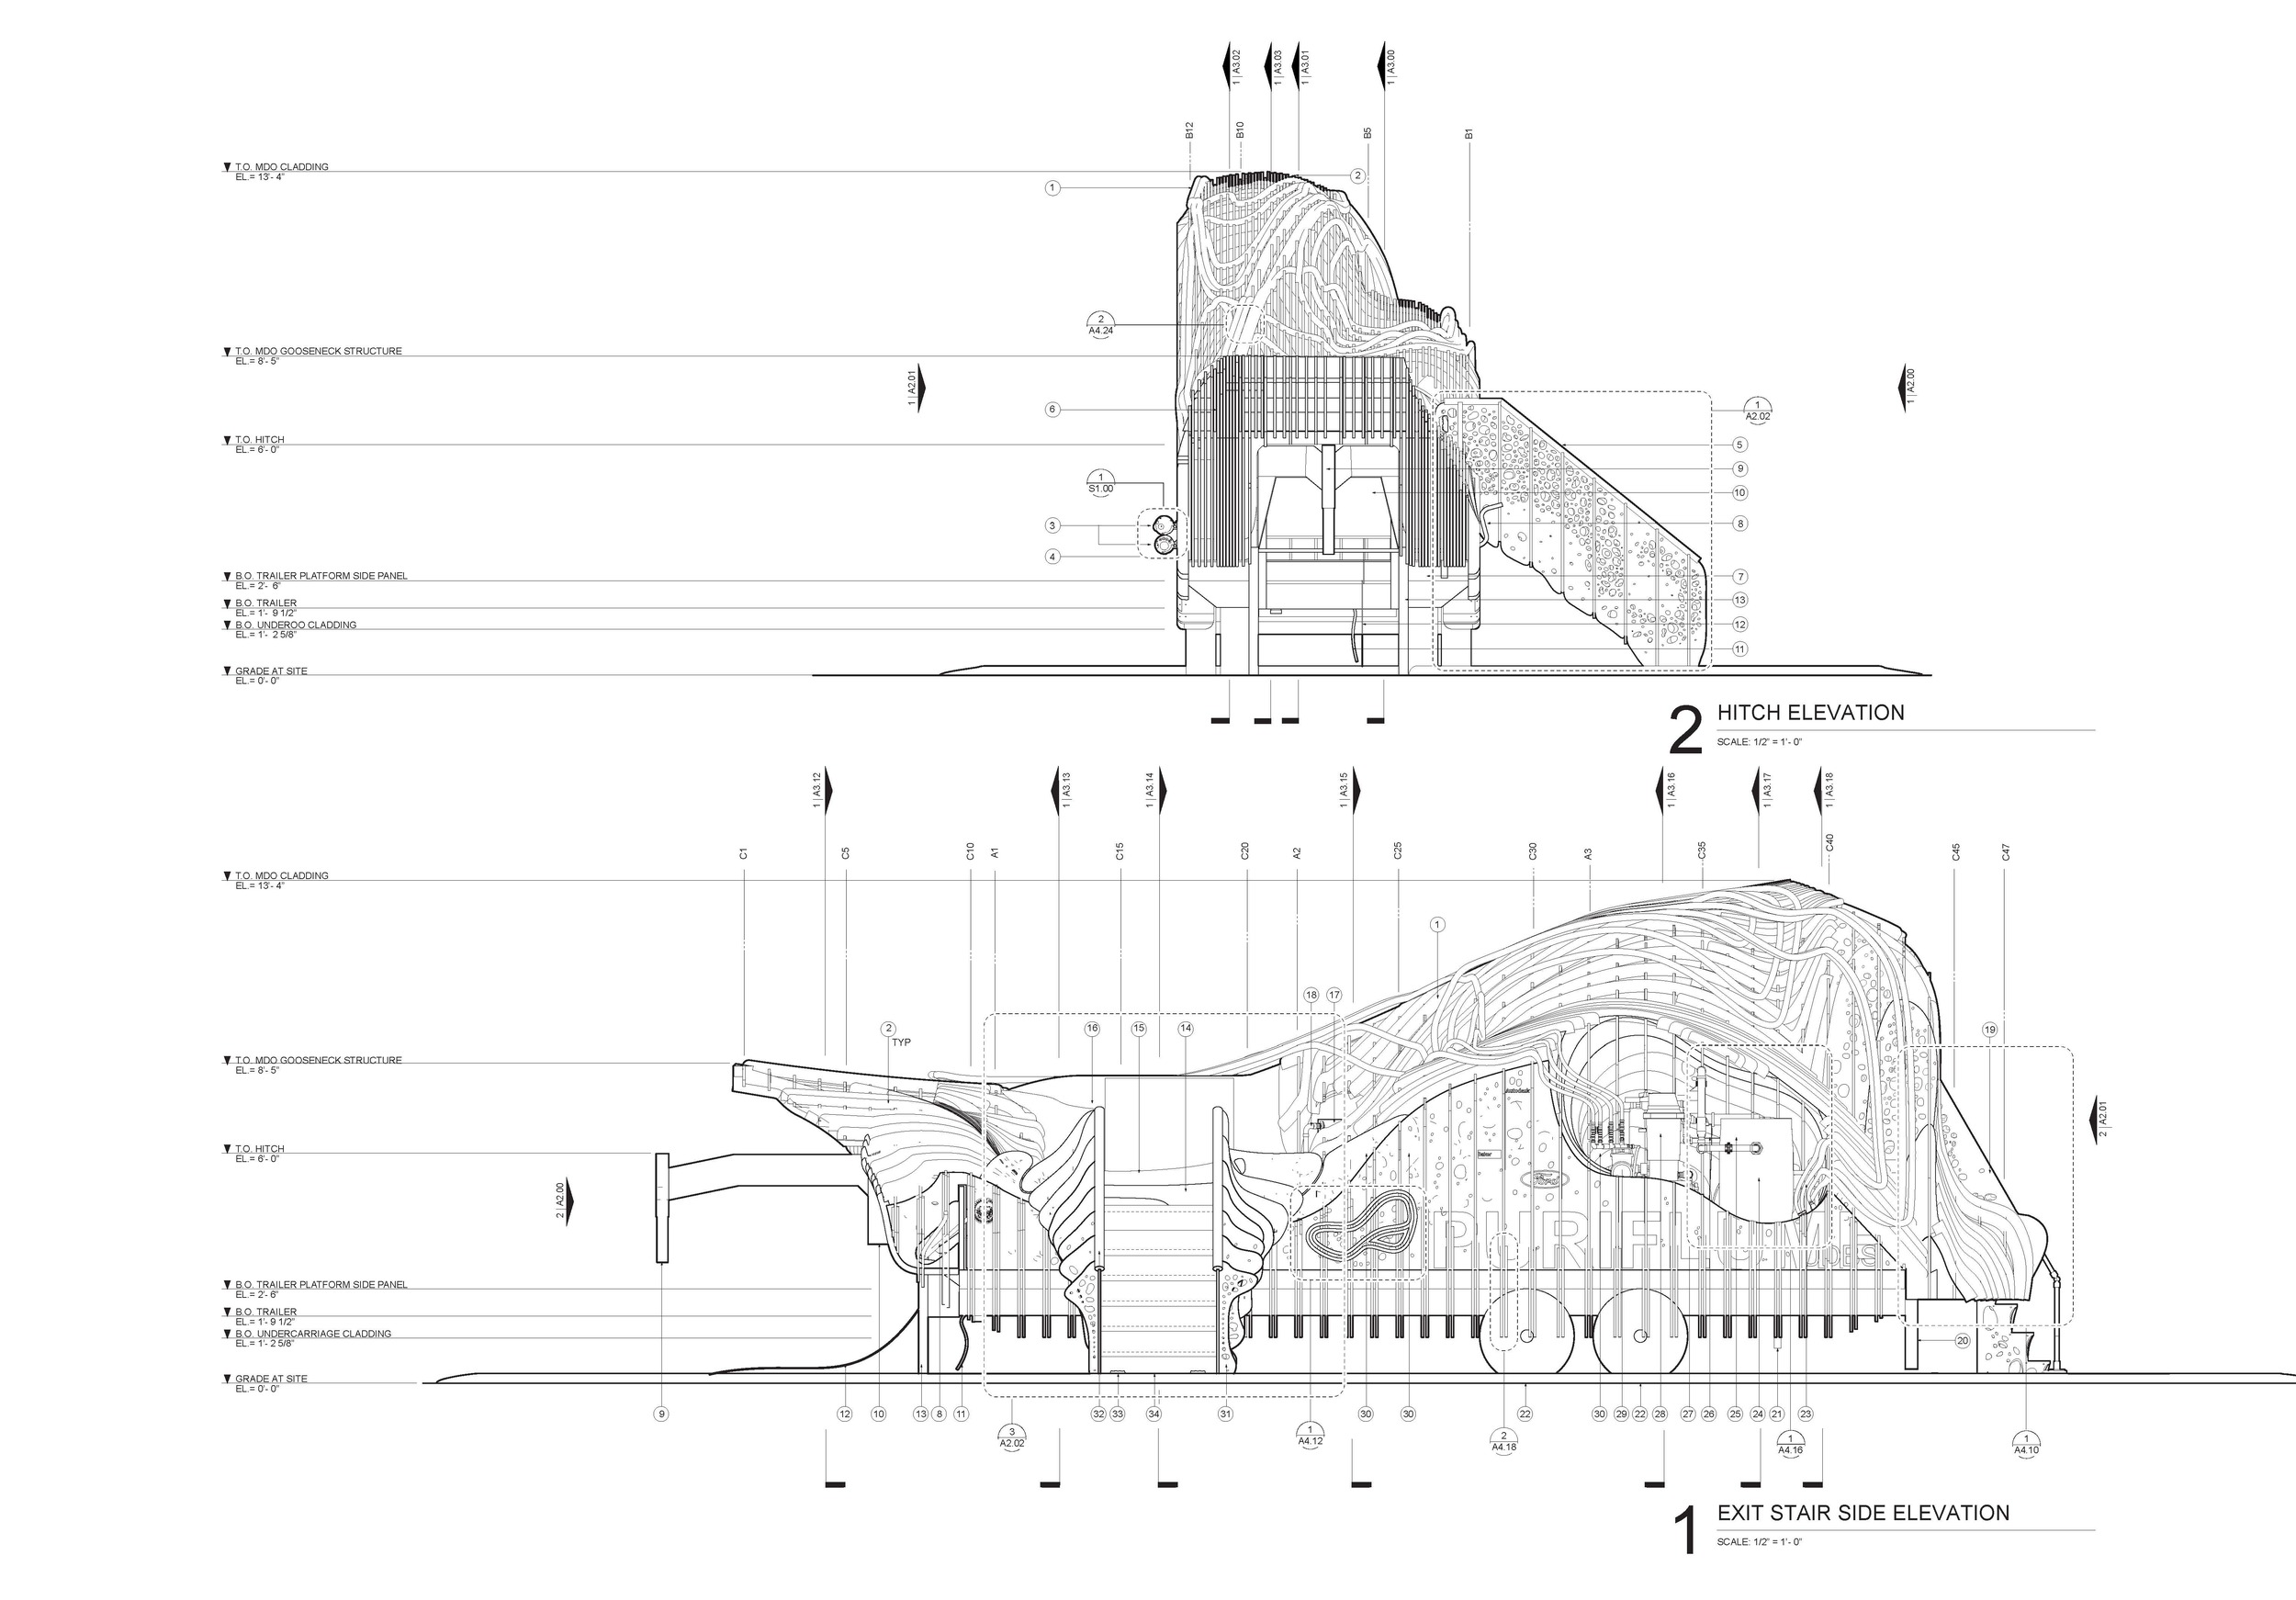 Elevation excerpts from construction drawing set.